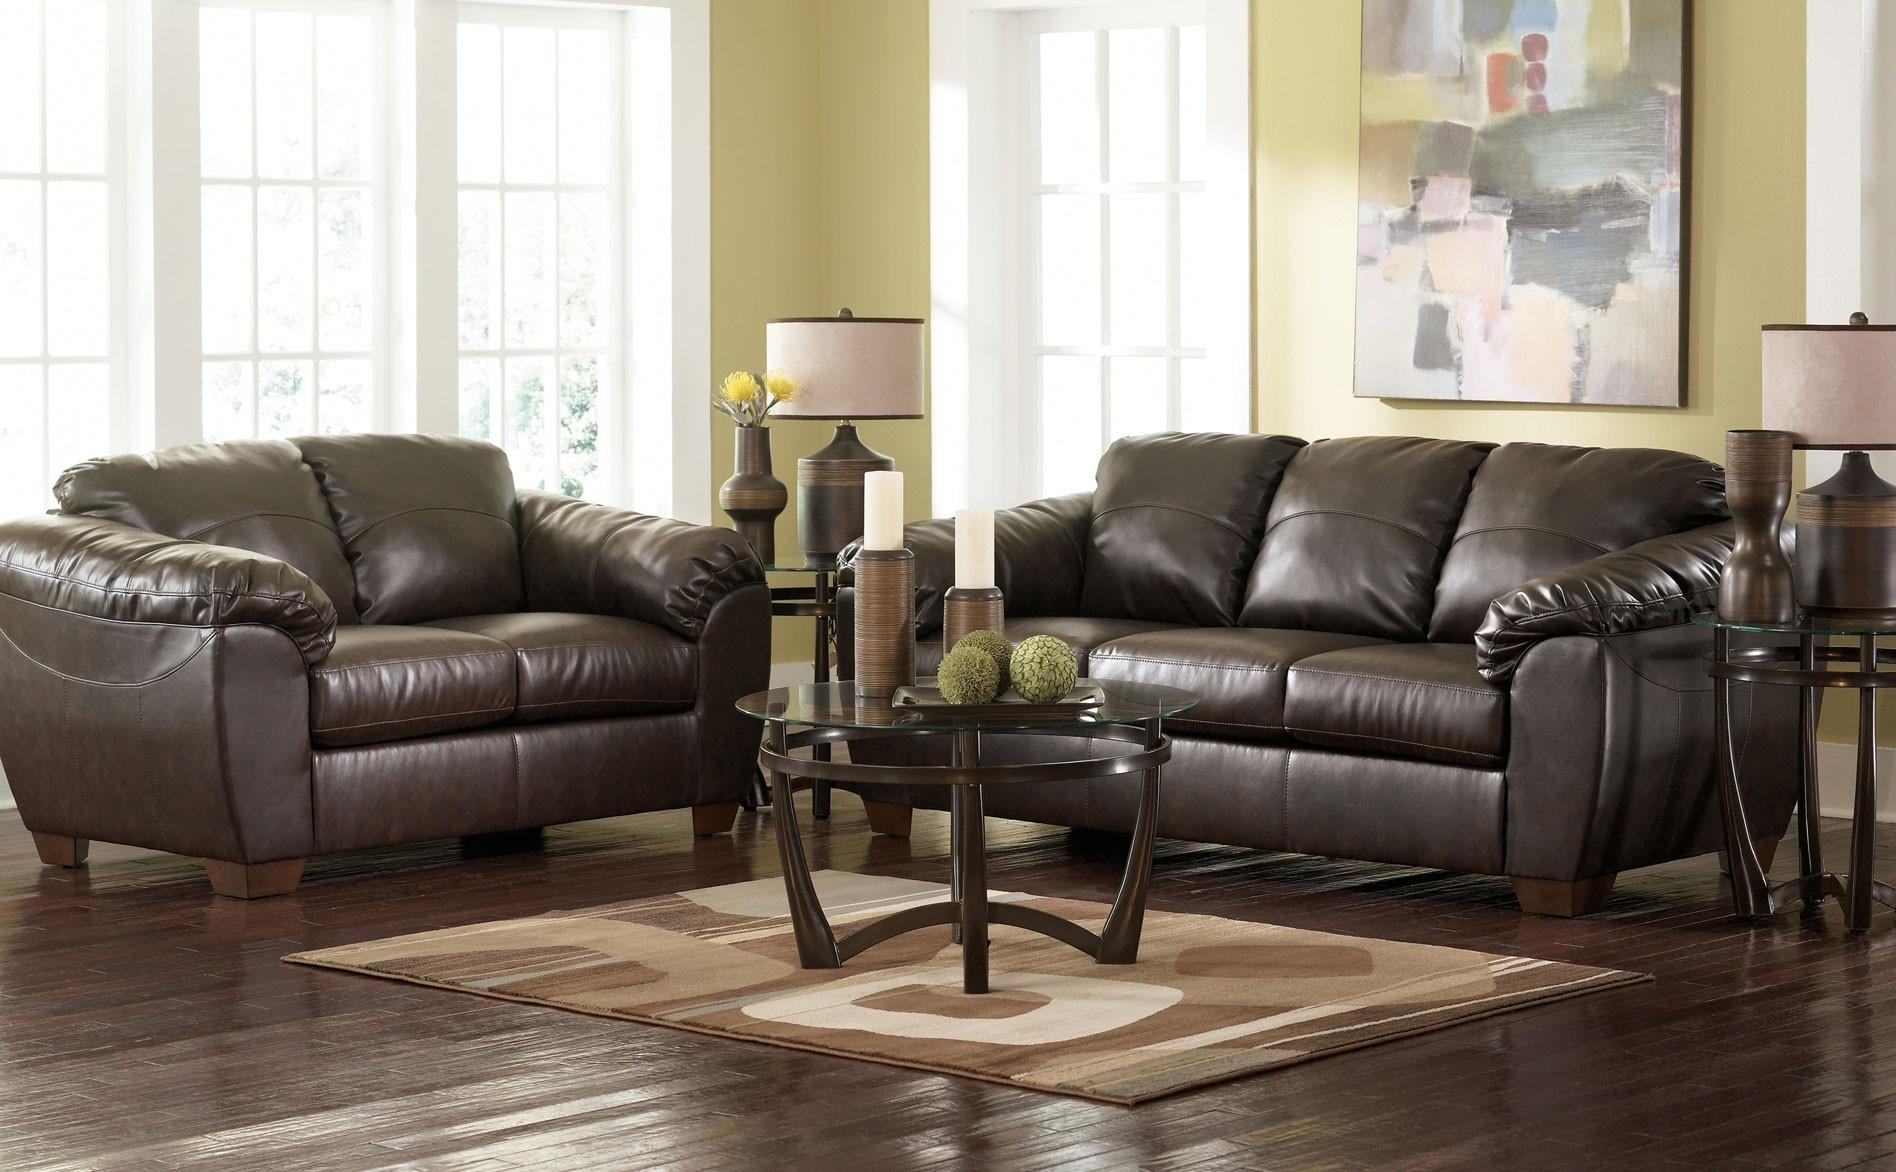 20 top sectional sofas ashley furniture sofa ideas for Ashley leather sofa